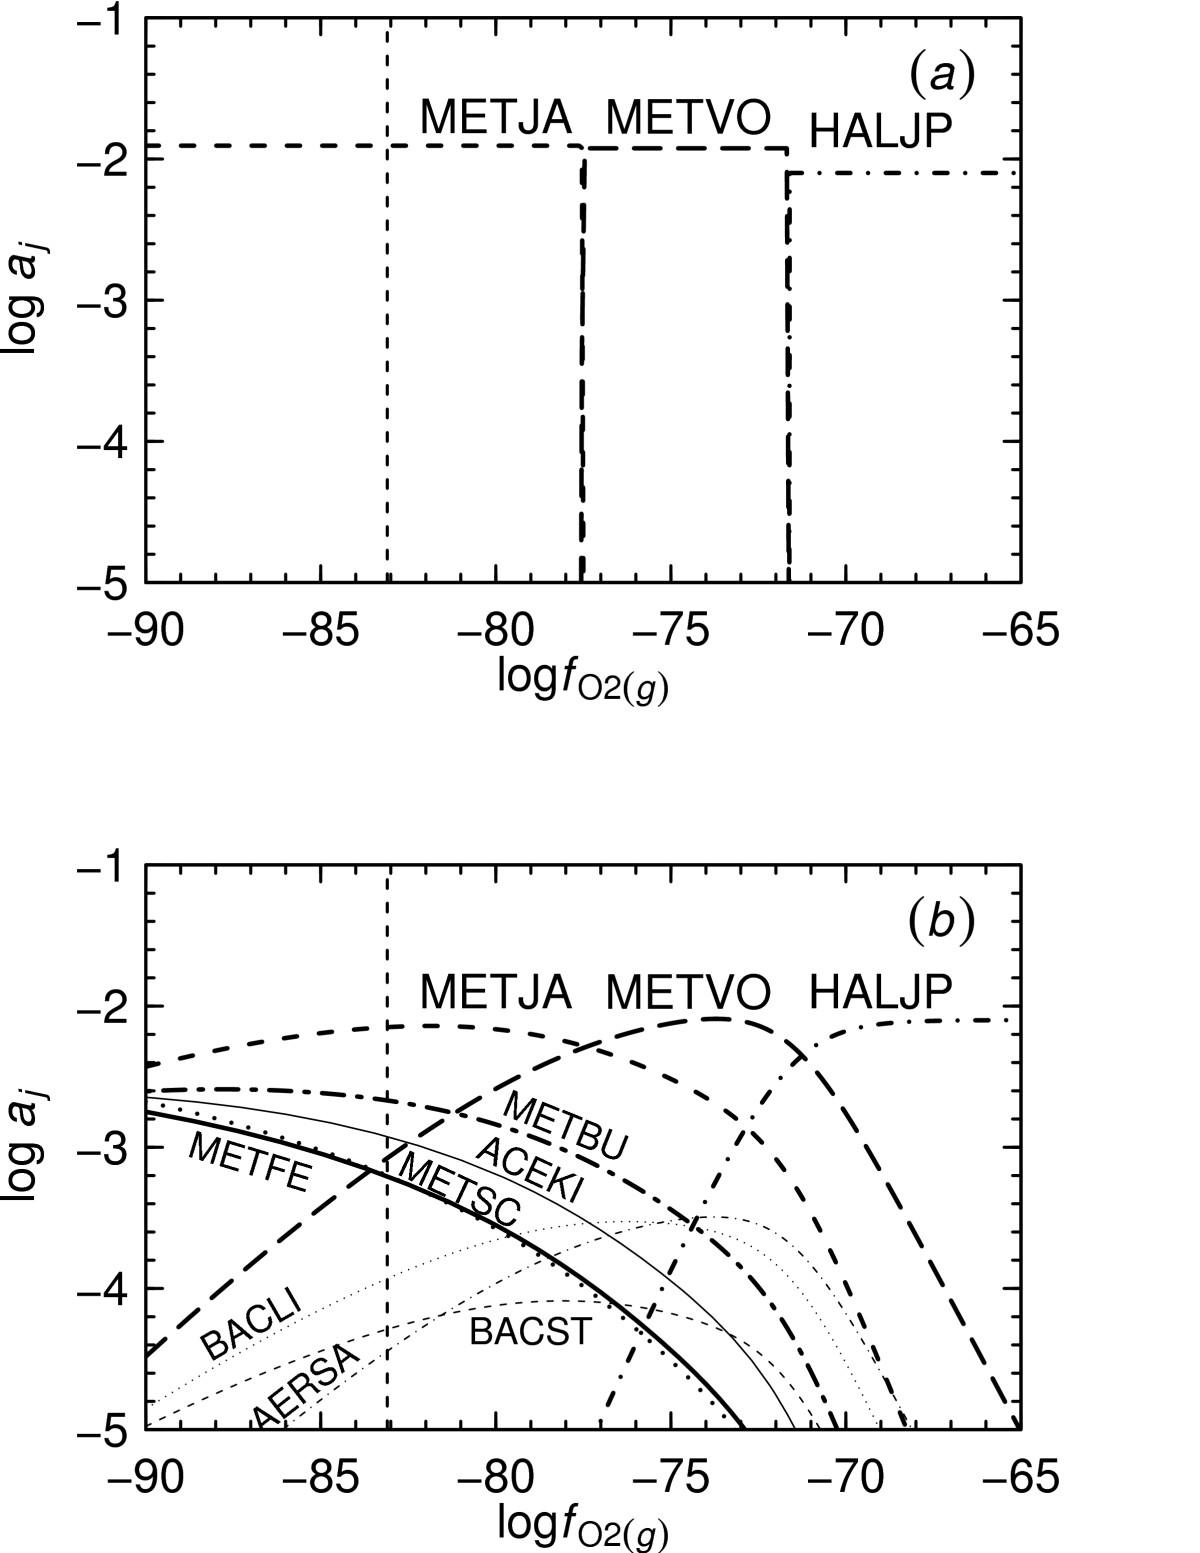 http://static-content.springer.com/image/art%3A10.1186%2F1467-4866-9-10/MediaObjects/12932_2008_Article_91_Fig5_HTML.jpg